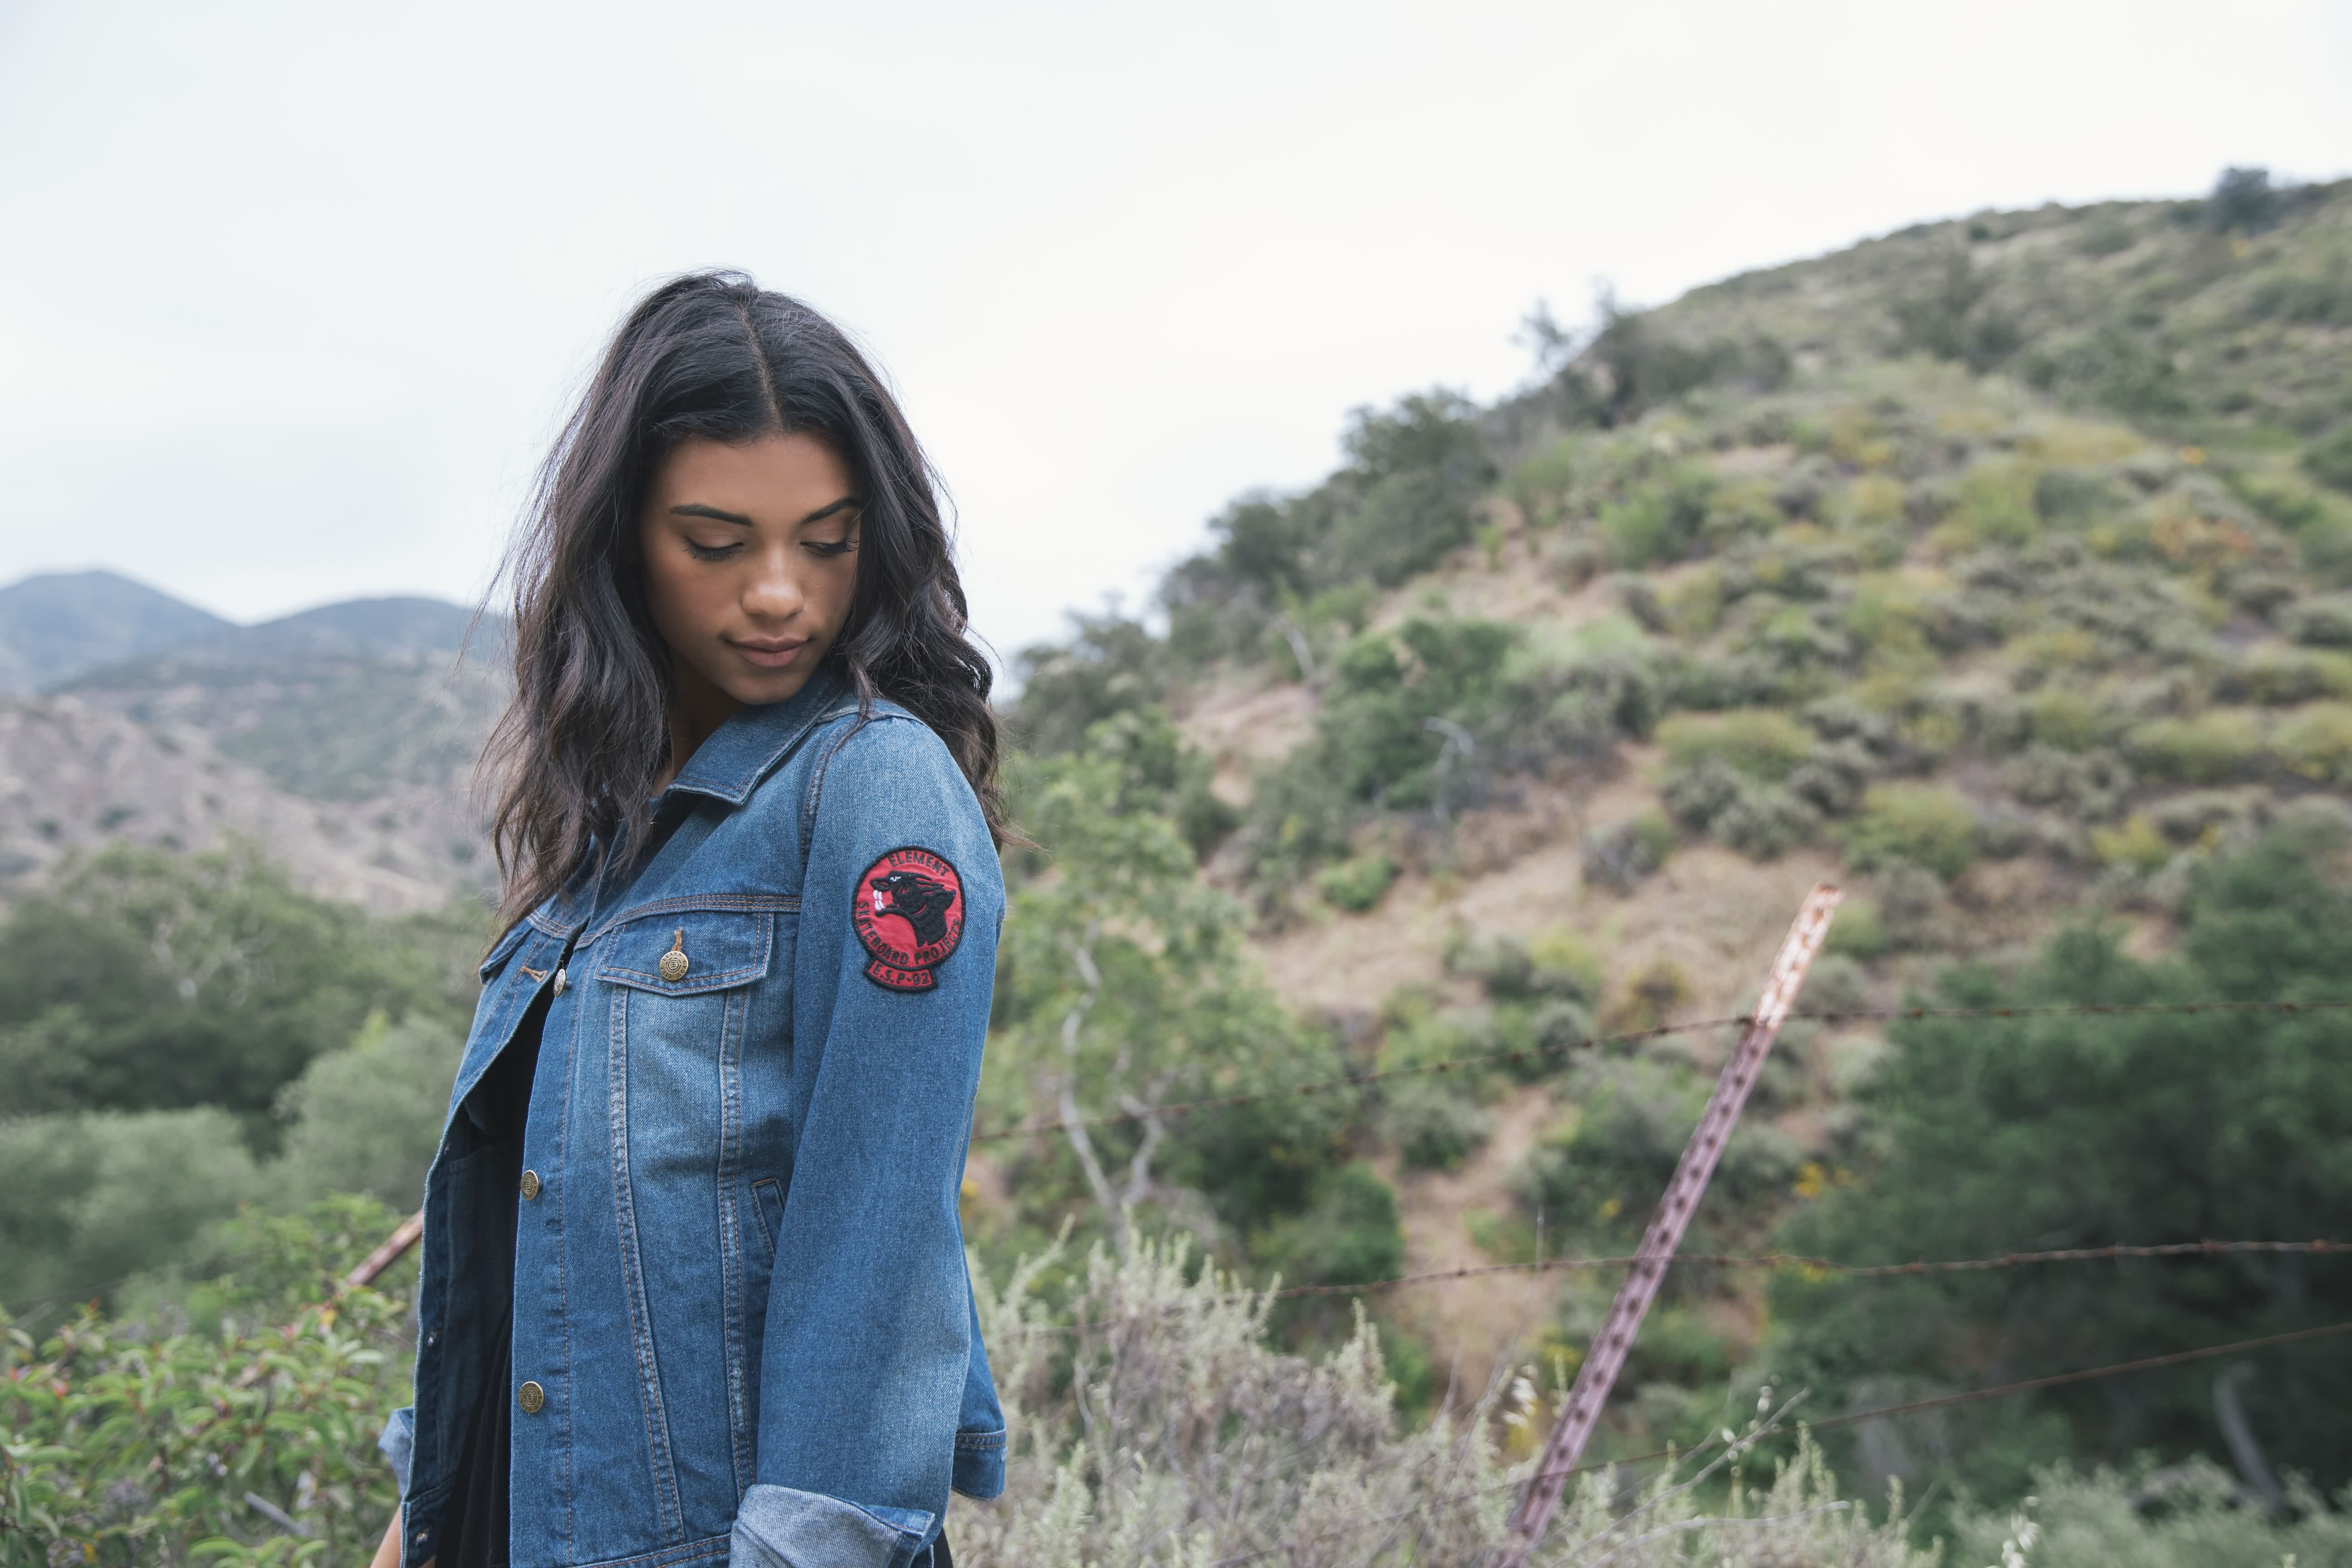 Element Skate Fall 2016 Womens Clothing Lifestyle Apparel Collection